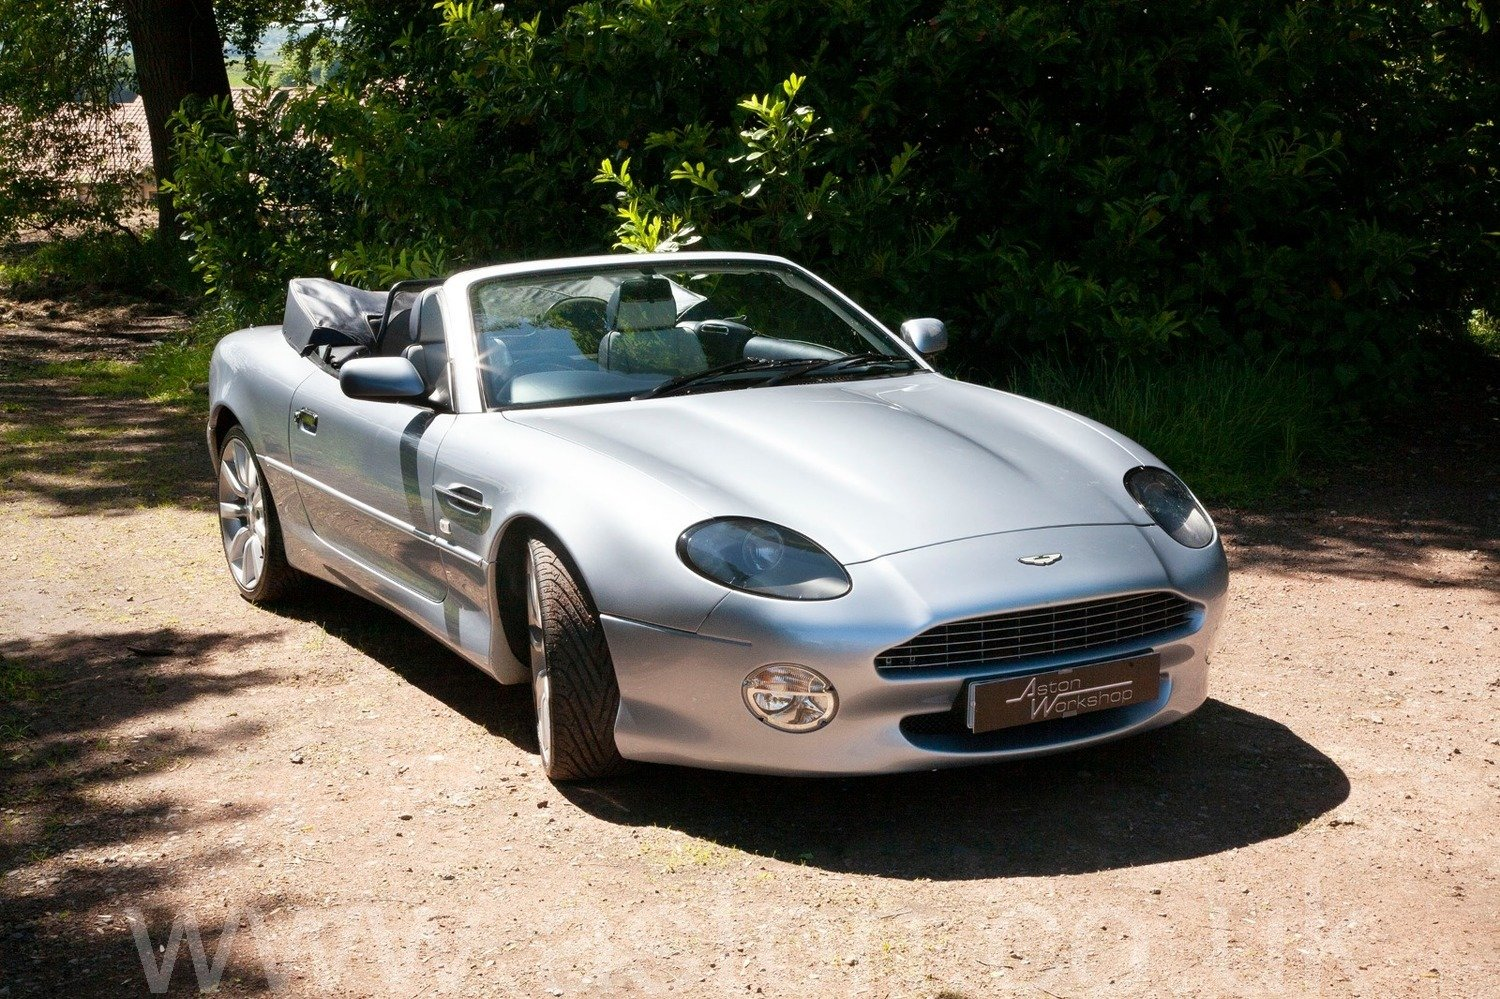 2003 2007 DB7 Vantage V12 Volante For Sale (picture 1 of 6)